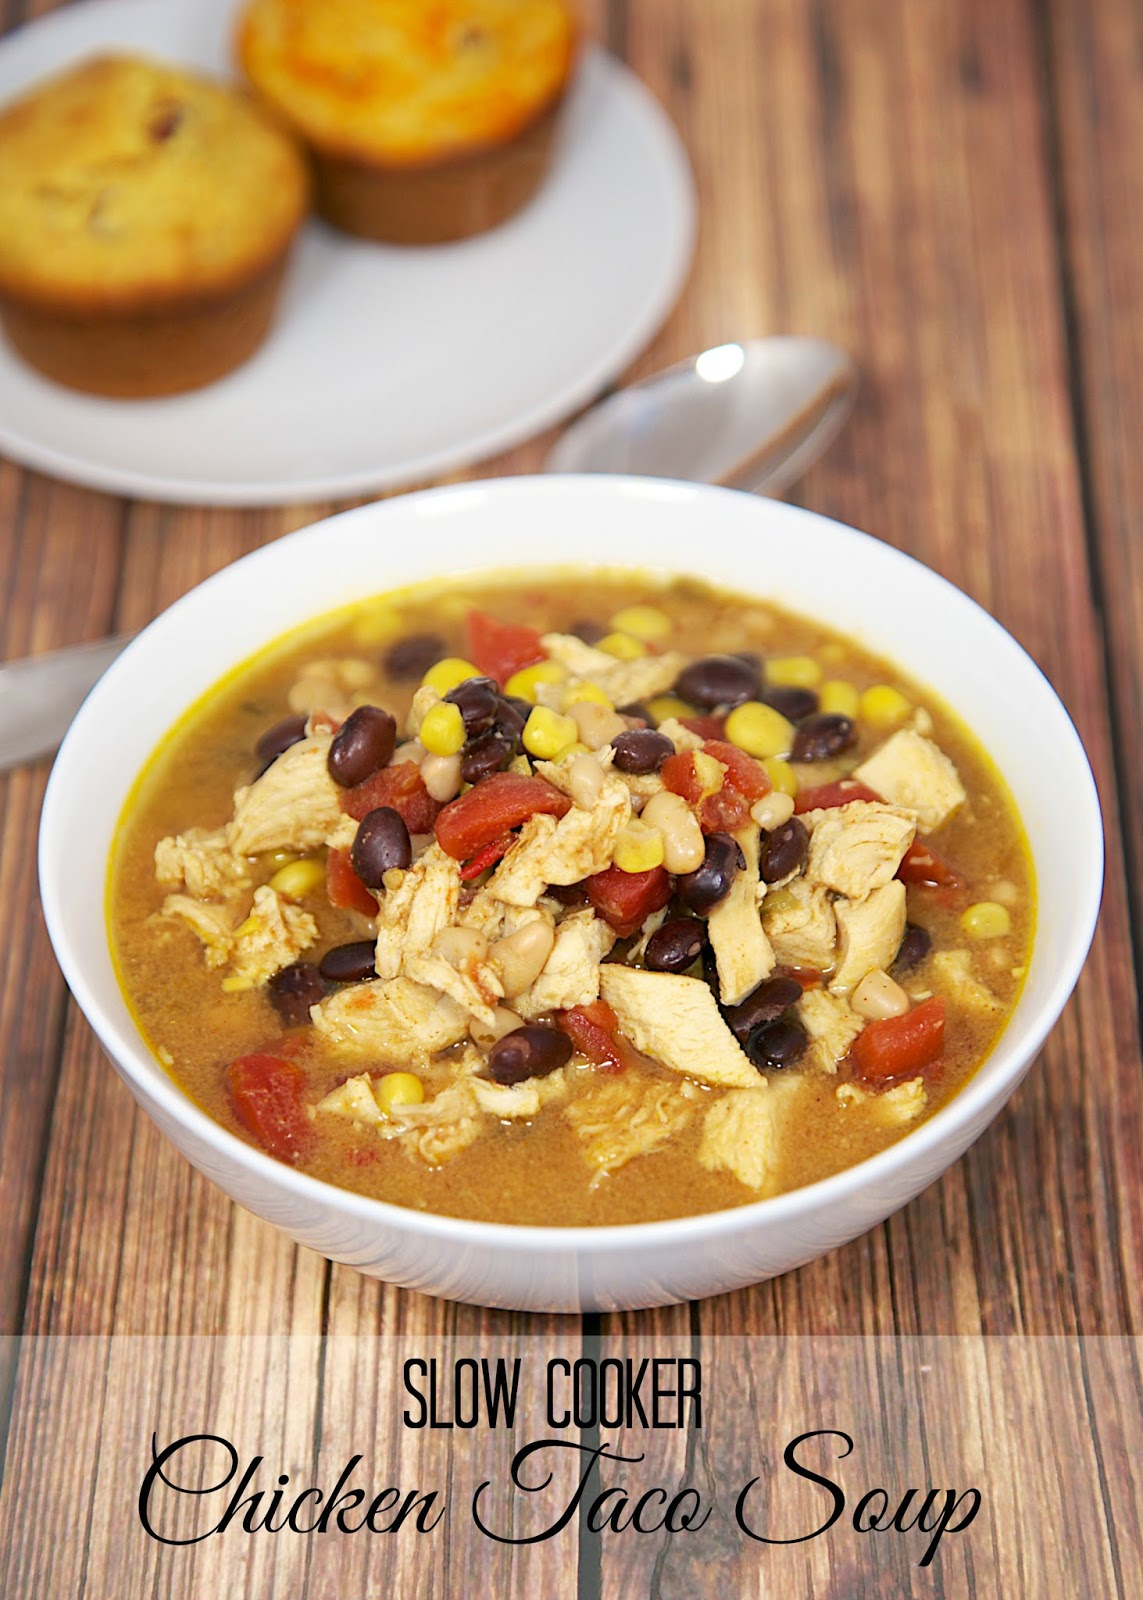 Slow Cooker Chicken Taco Soup - tastes like the Chicken Tortilla Soup from Chick-fil-a - SO good! Freezes well too!